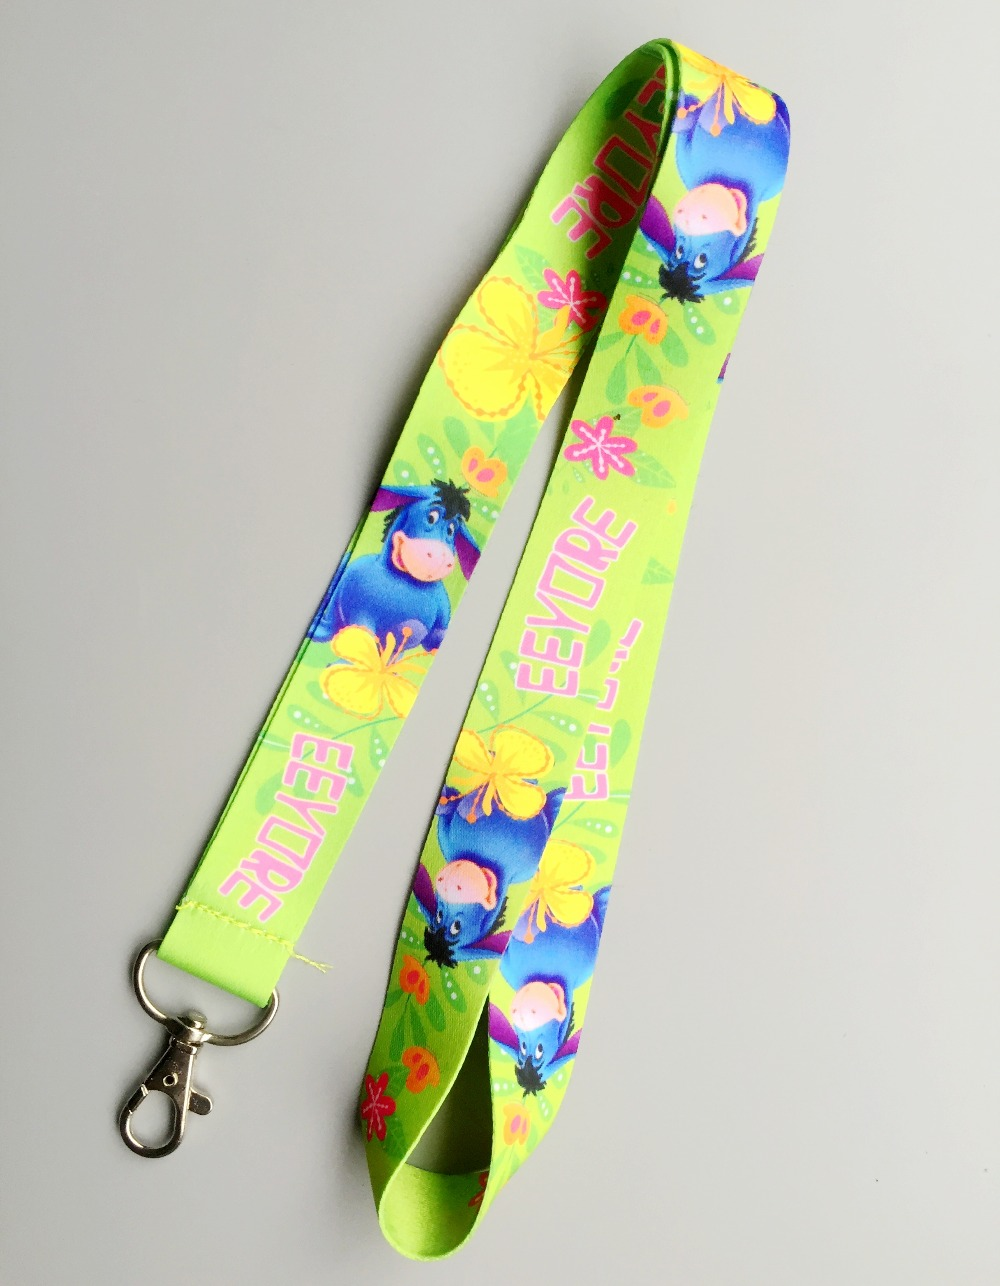 1pcs Cartoon Eeyore Green Key Lanyard Badge ID Cards Holders Neck Straps With Keyring Gifts Party Favors